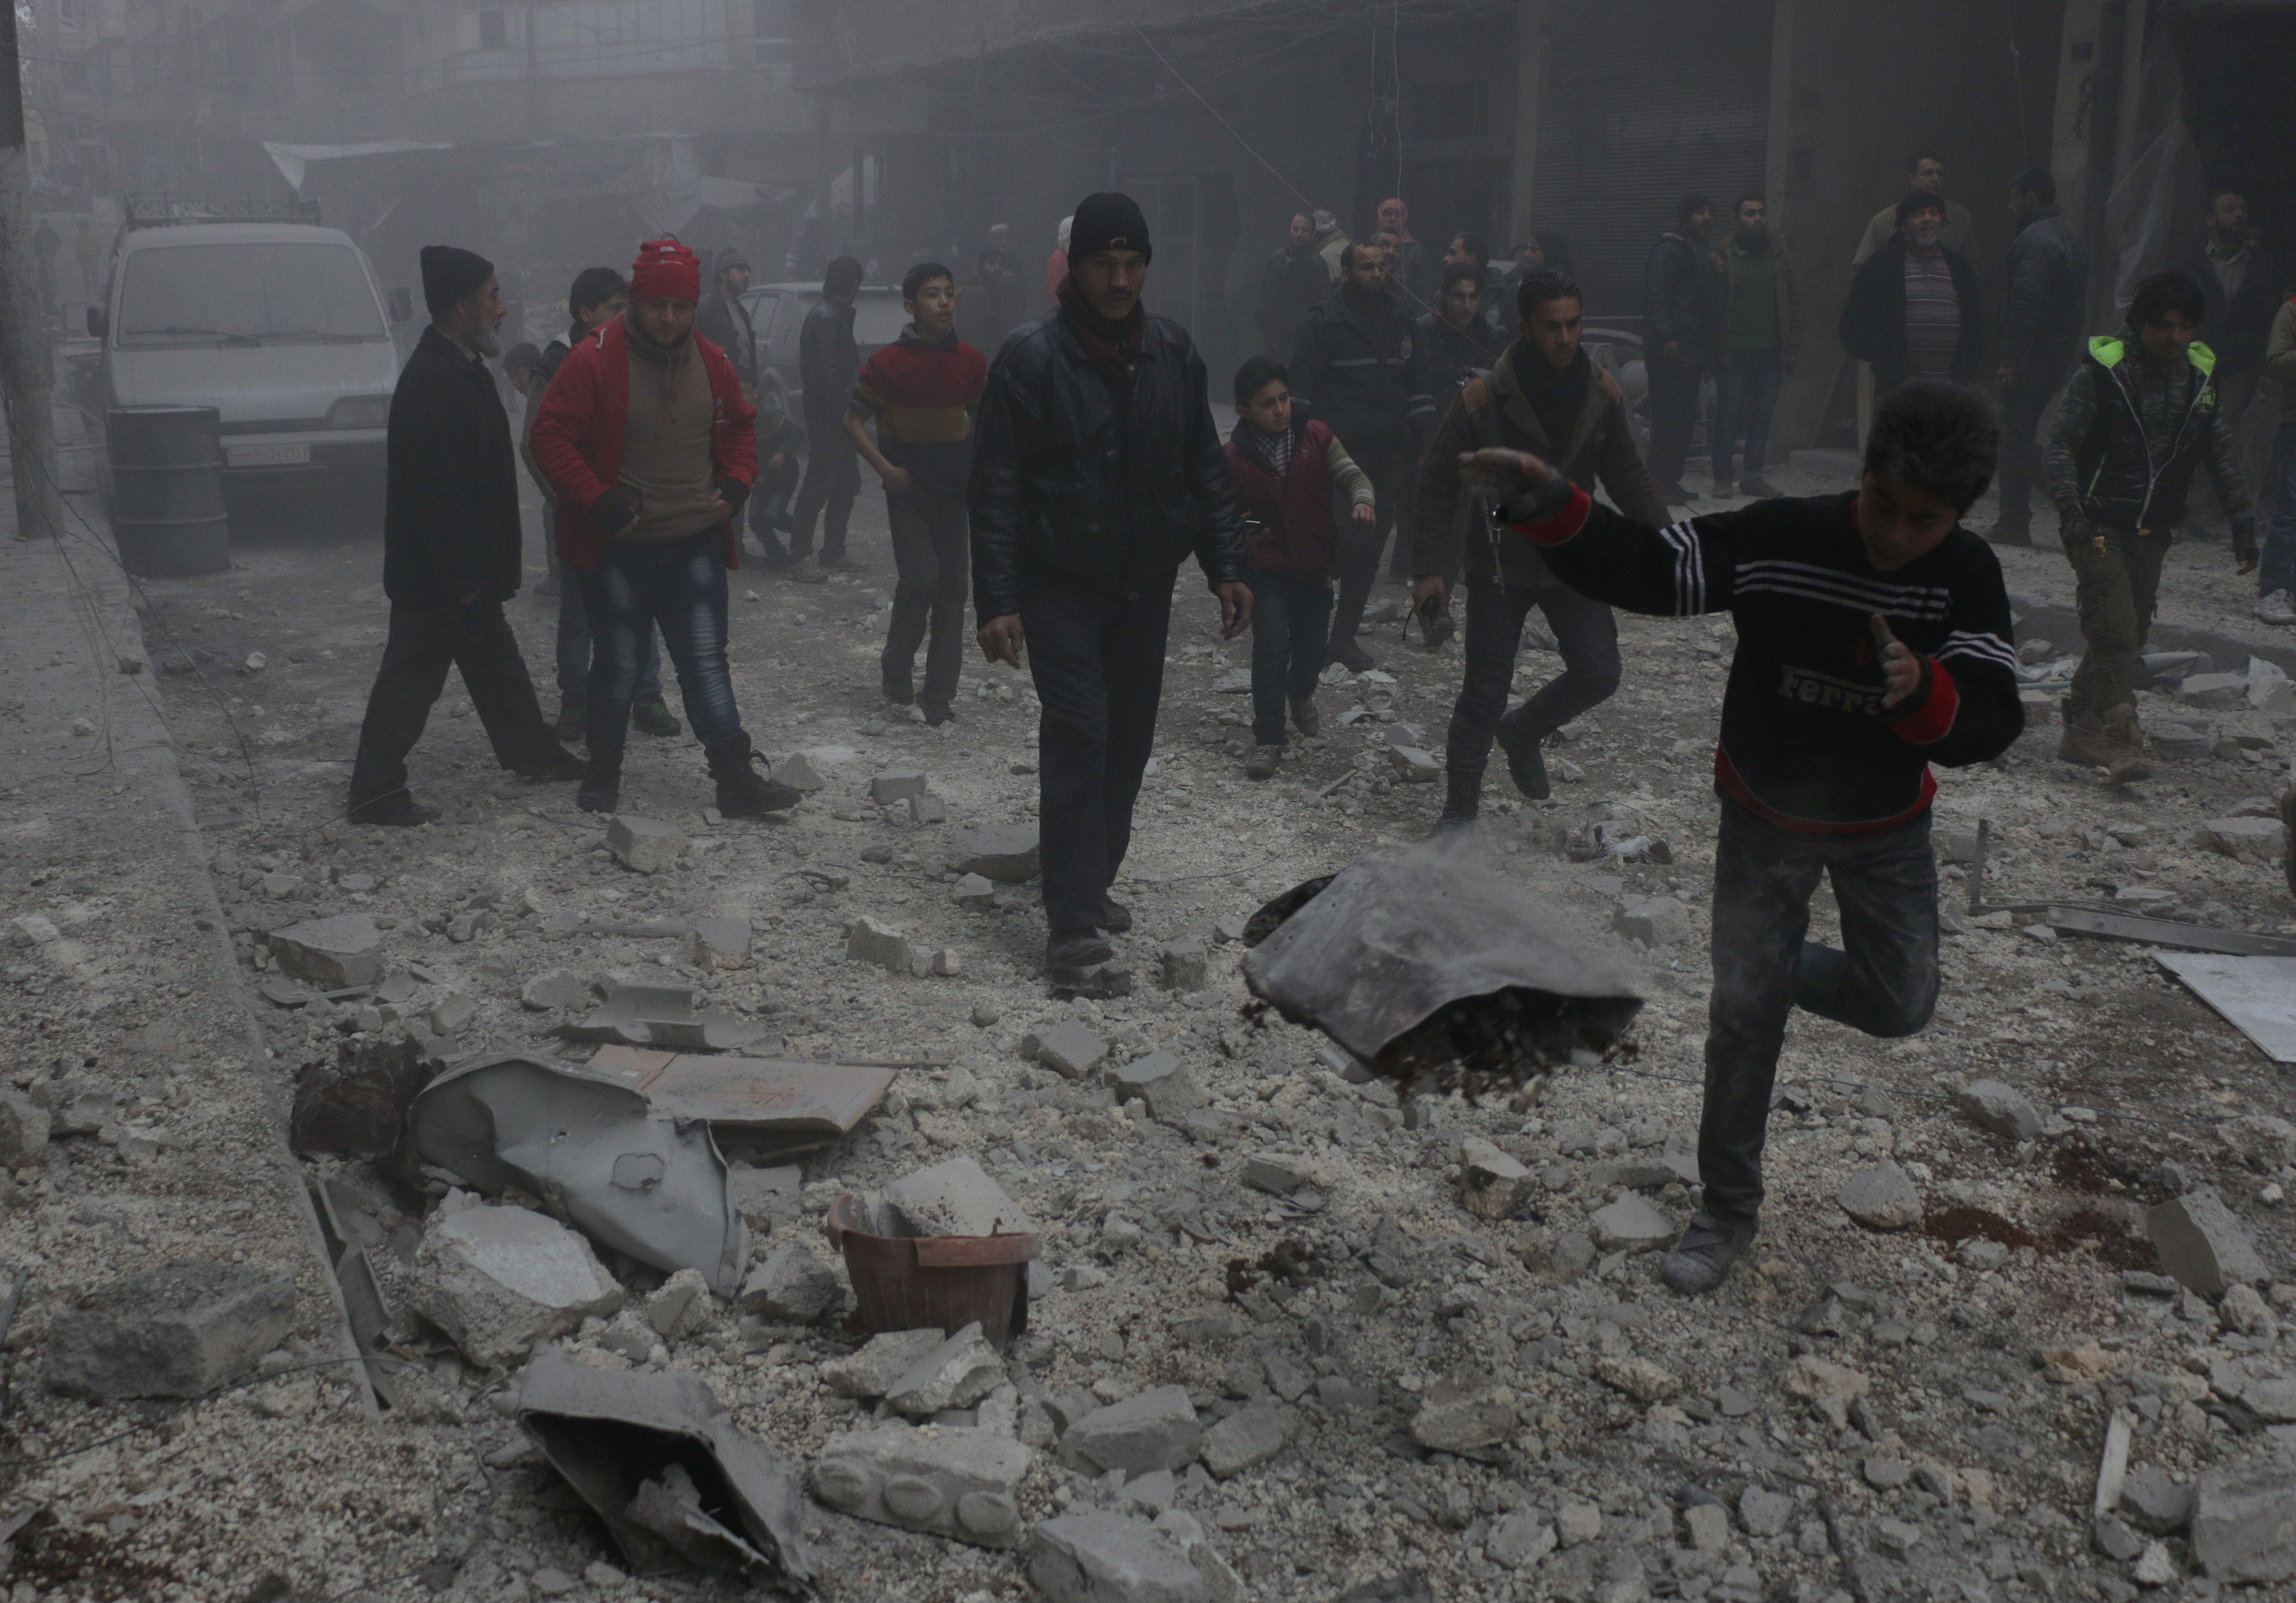 People are seen inside debris after a Russian forces staged air-strike over residential areas in Bustan al-Qasr neighborhood of Aleppo, Syria, on Jan. 21, 2016